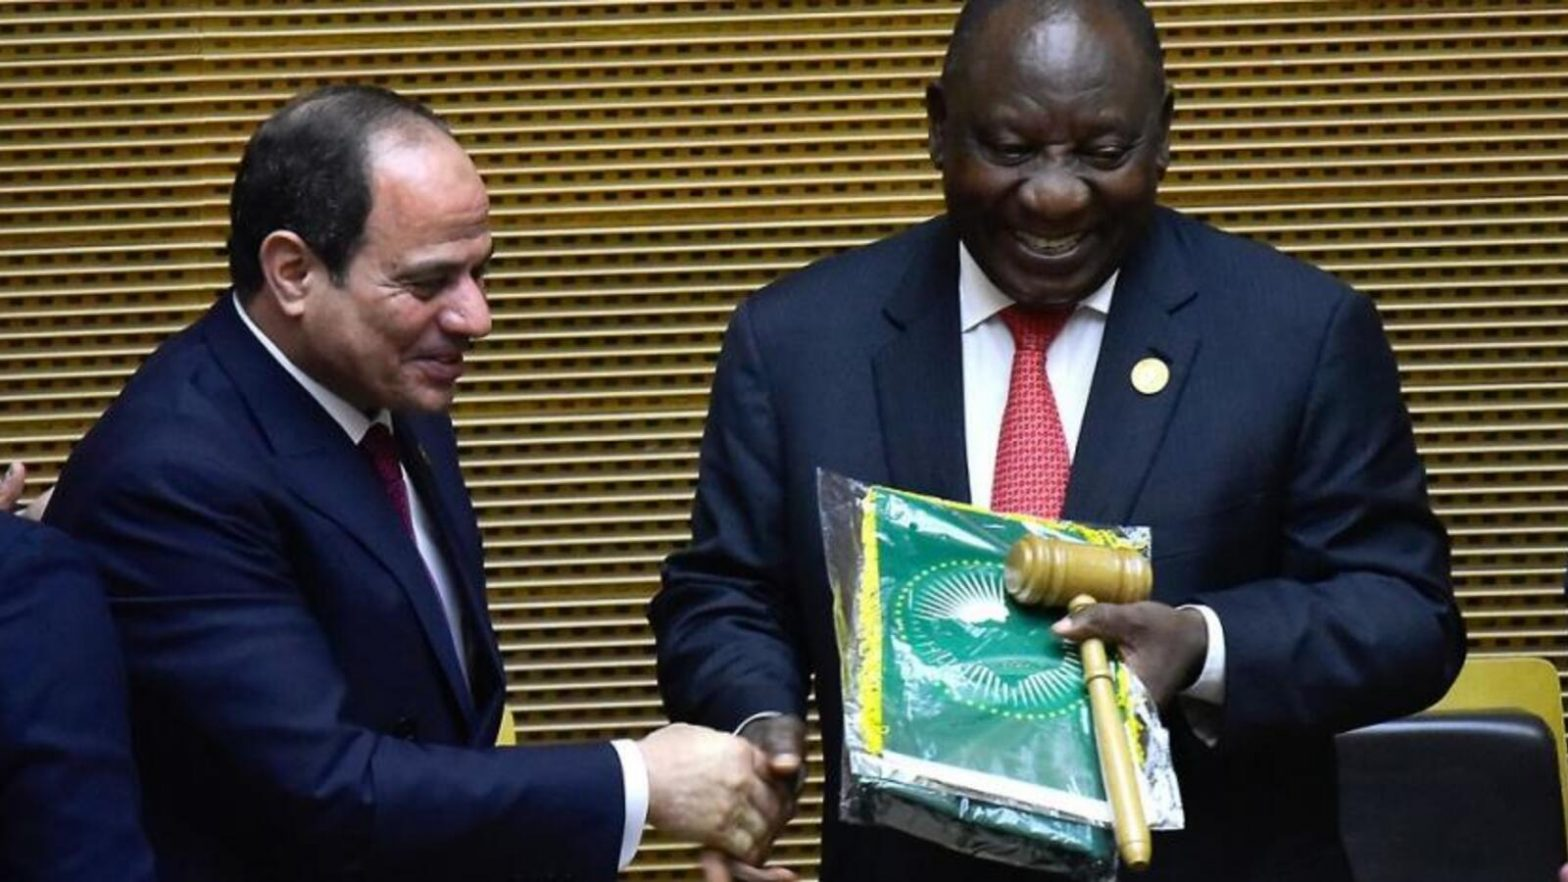 Cyril Ramaphosa takes over as African Union Chairperson